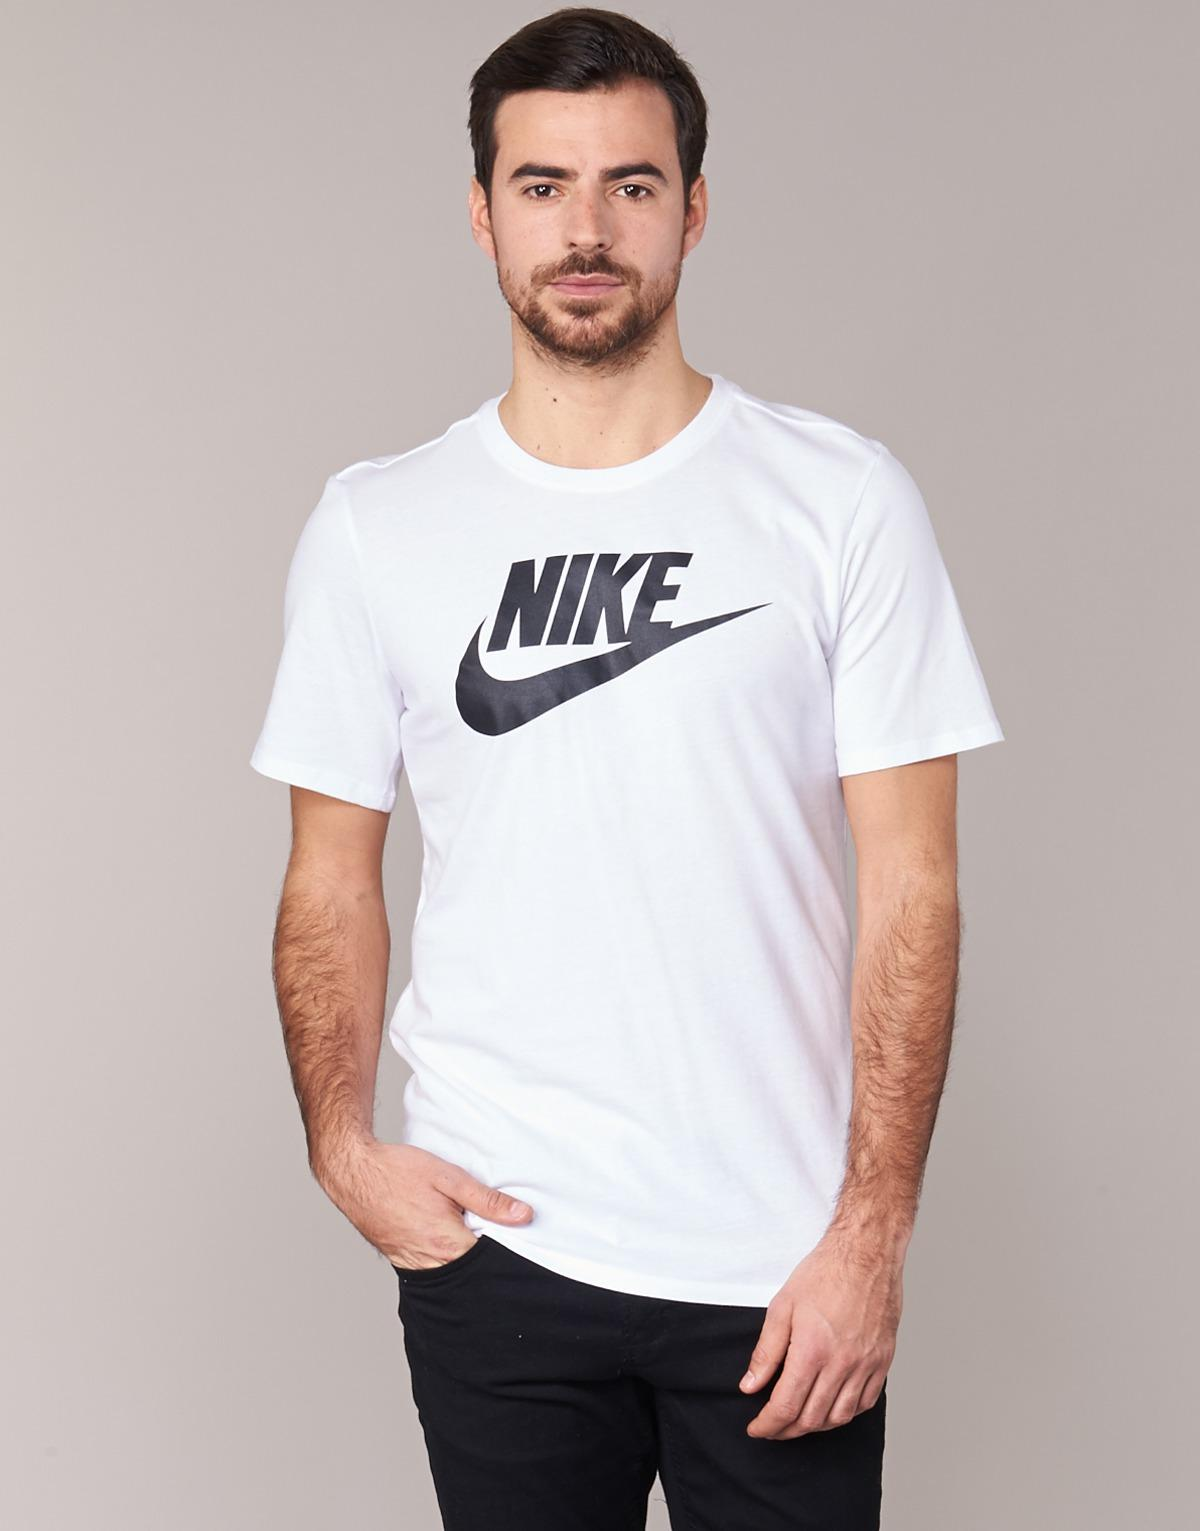 6f16fb377 Nike Futura Icon T Shirt in White for Men - Save 18% - Lyst